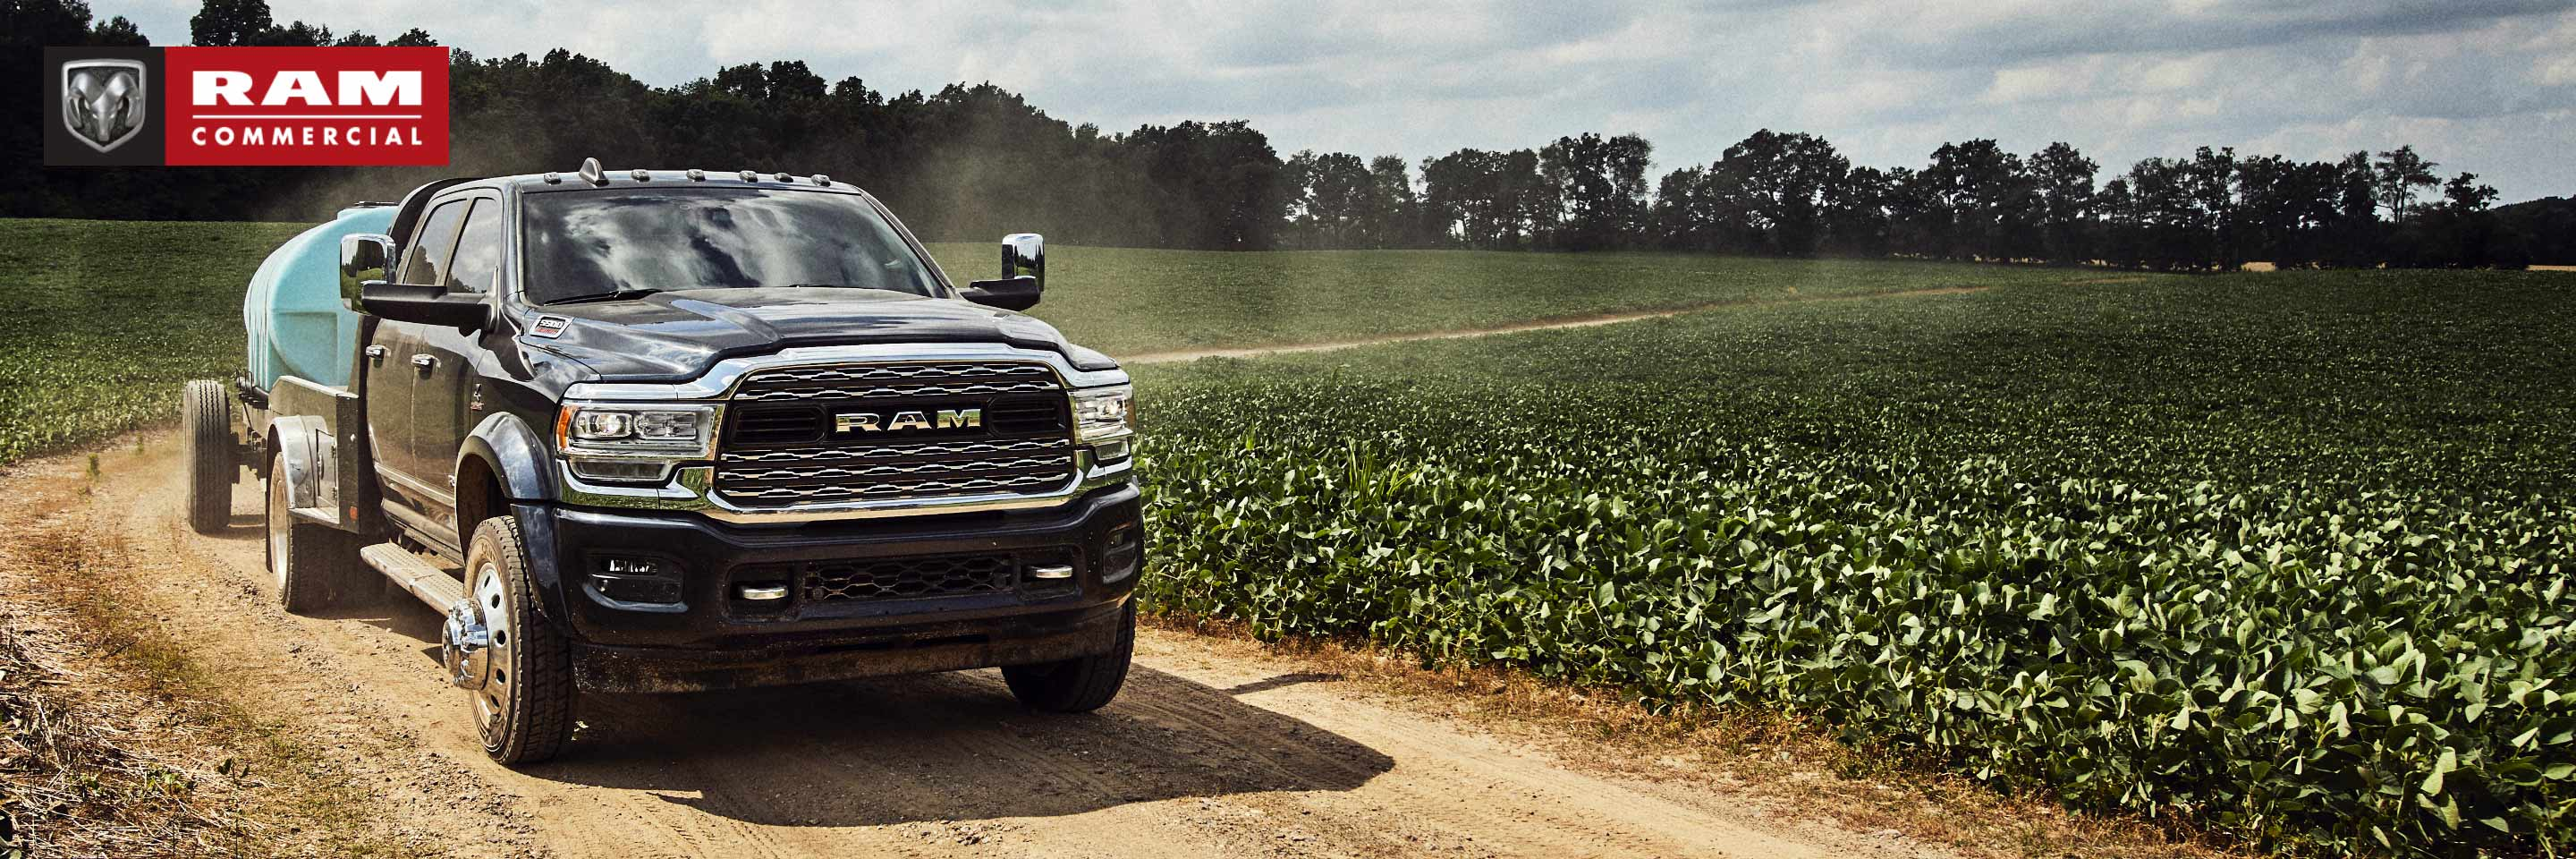 The 2020 Ram Chassis Cab being driven on a dirt road through a field with a water tank in tow. Ram Commercial logo.